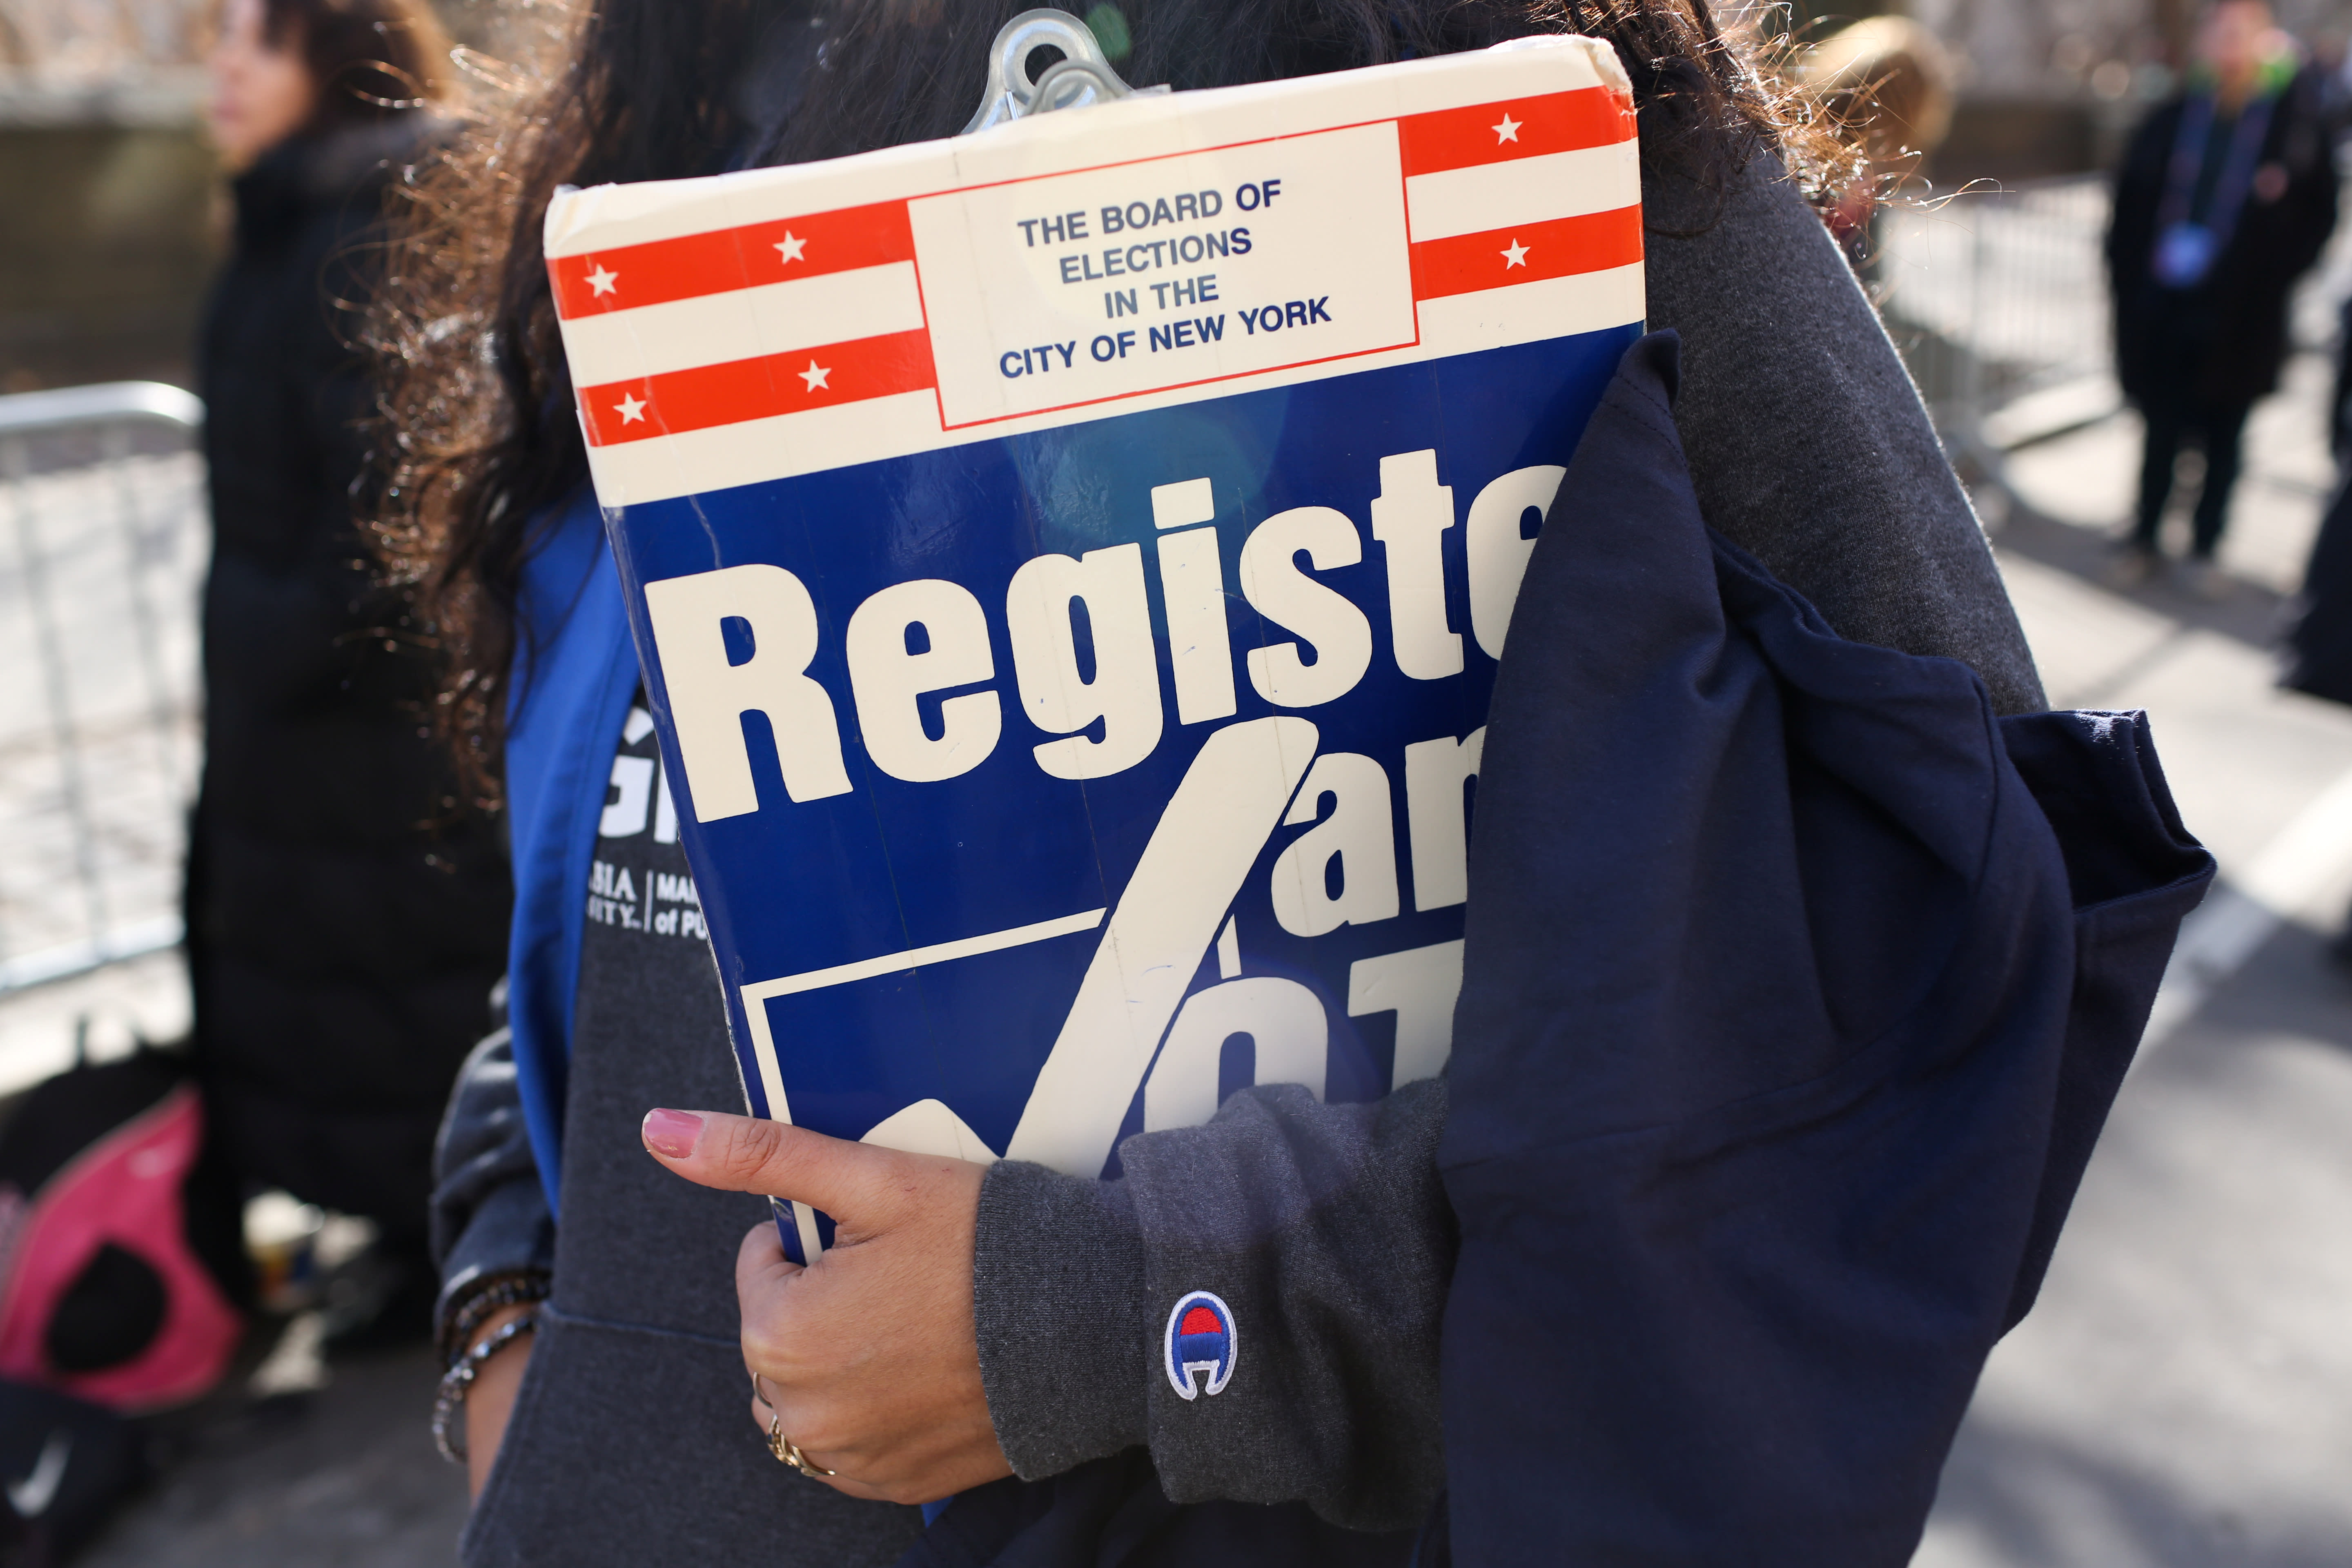 A woman holds a clipboard to register people to vote at Women's March in Manhattan in New York City (REUTERS/Gabriela Bhaskar)